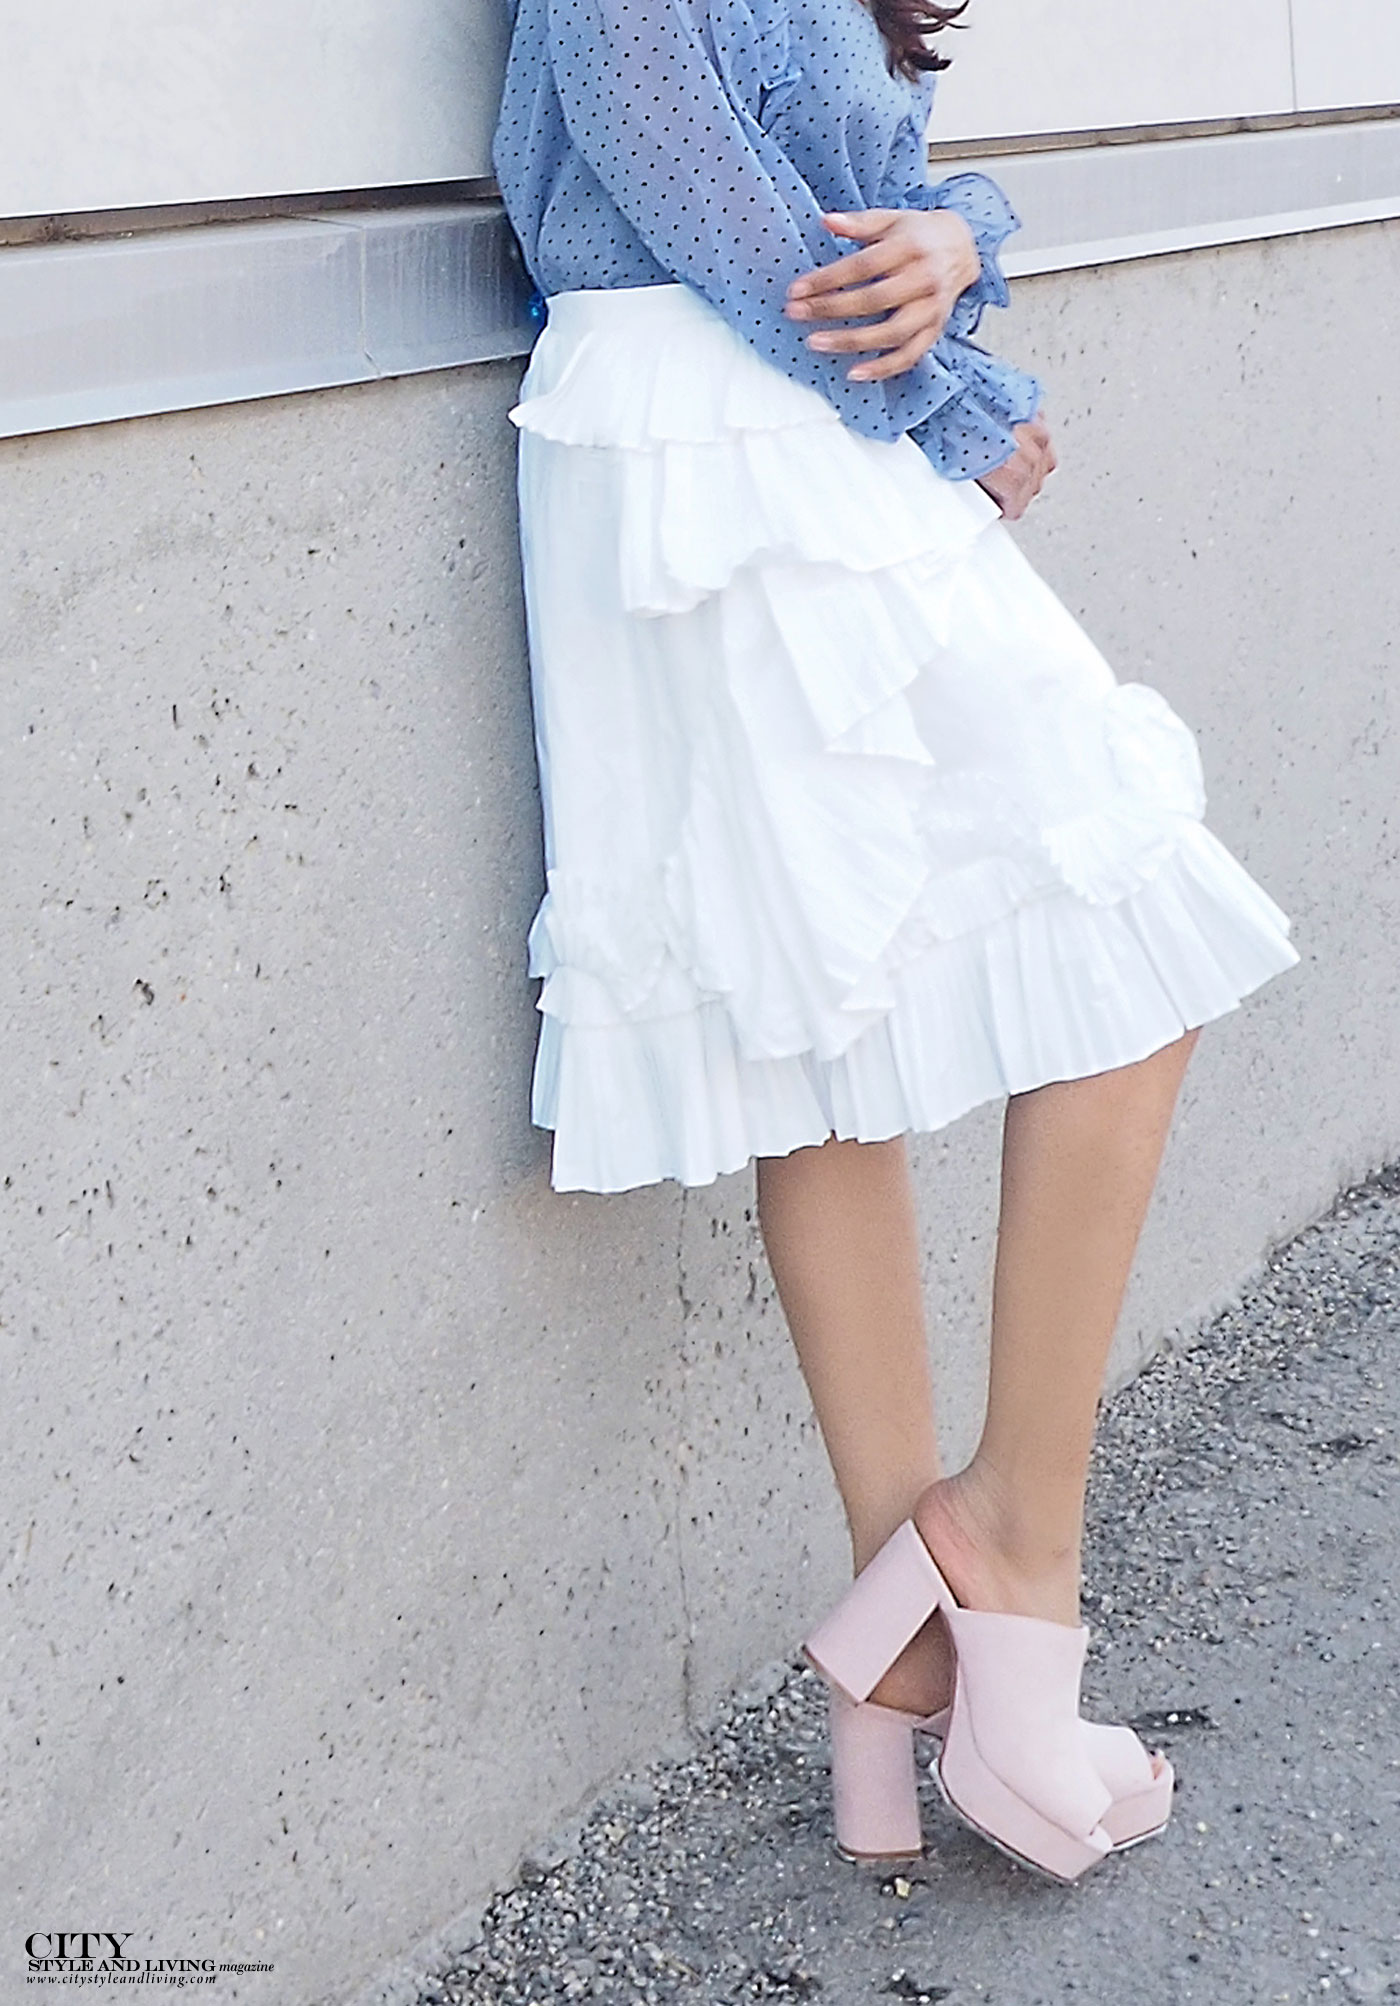 City style and living magazine The Editors Notebook style fashion blogger Shivana Maharaj how to wear frills for spring 2017 frill skirt closeup